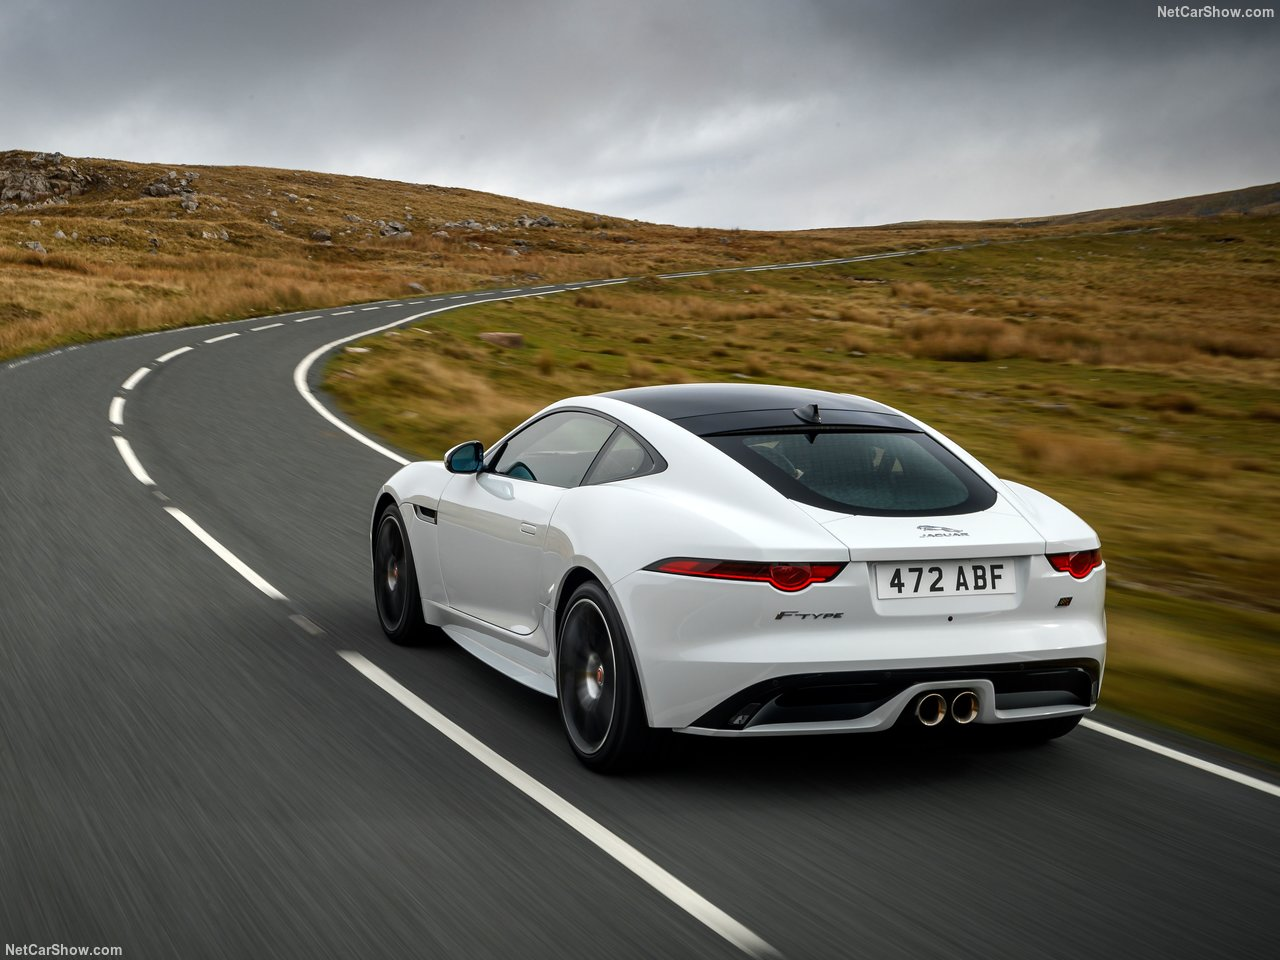 Jaguar F-Type Checkered Flag Limited Edition festeja os 70 anos de modelos desportivos